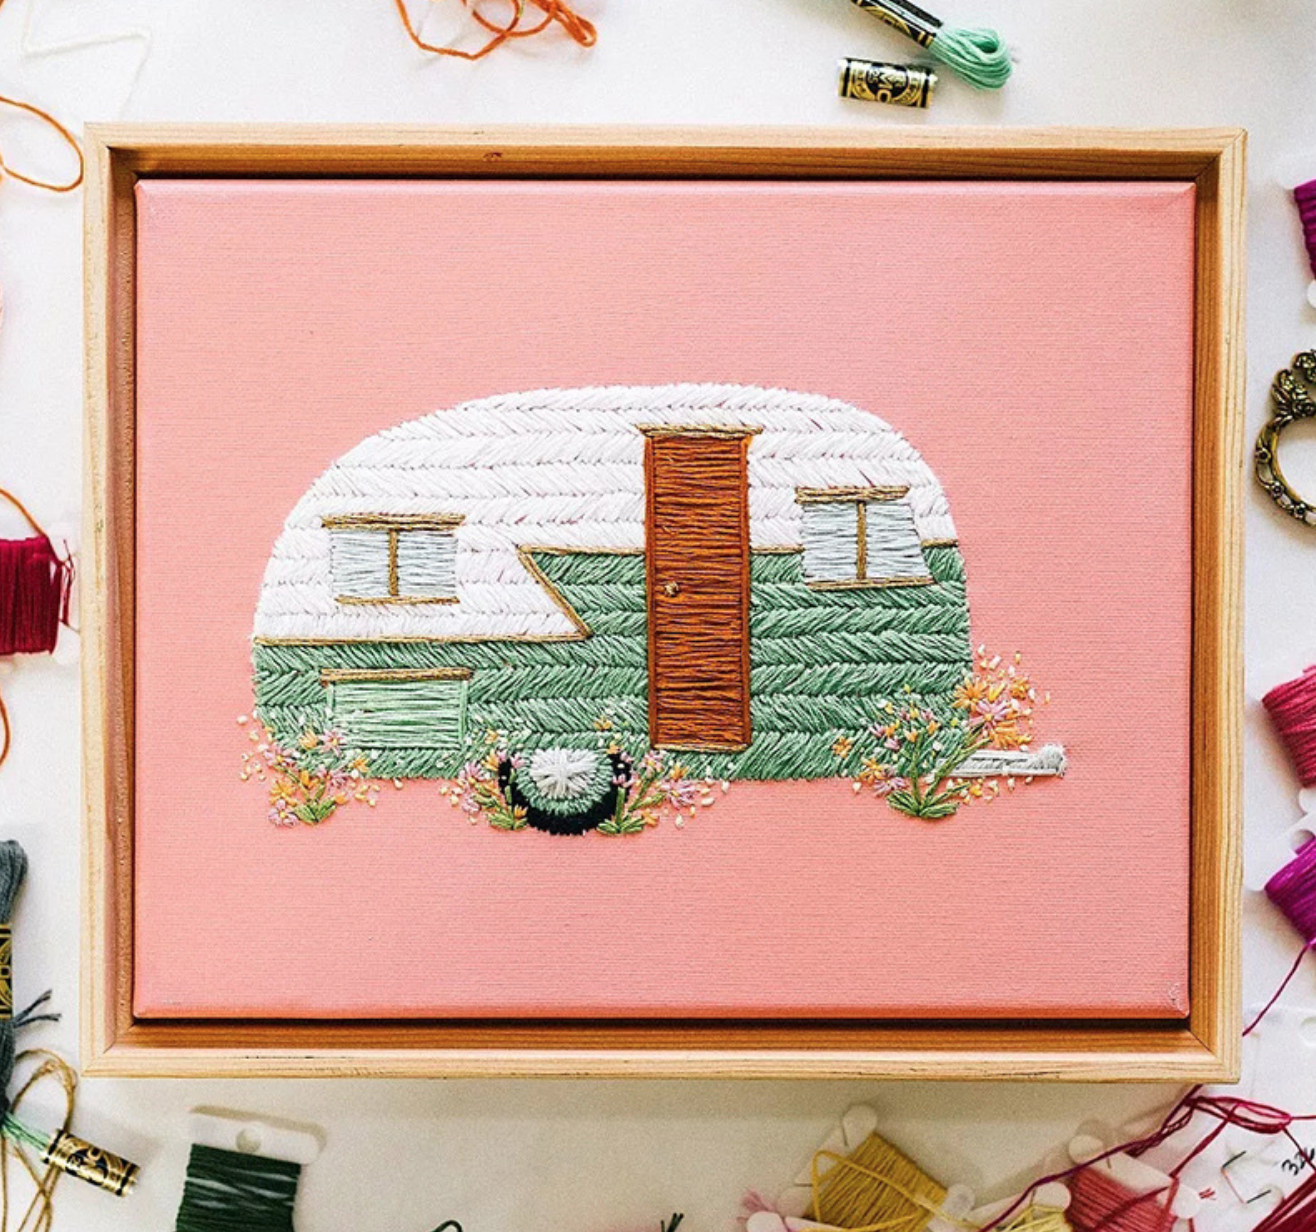 White and Green Camper Embroidery